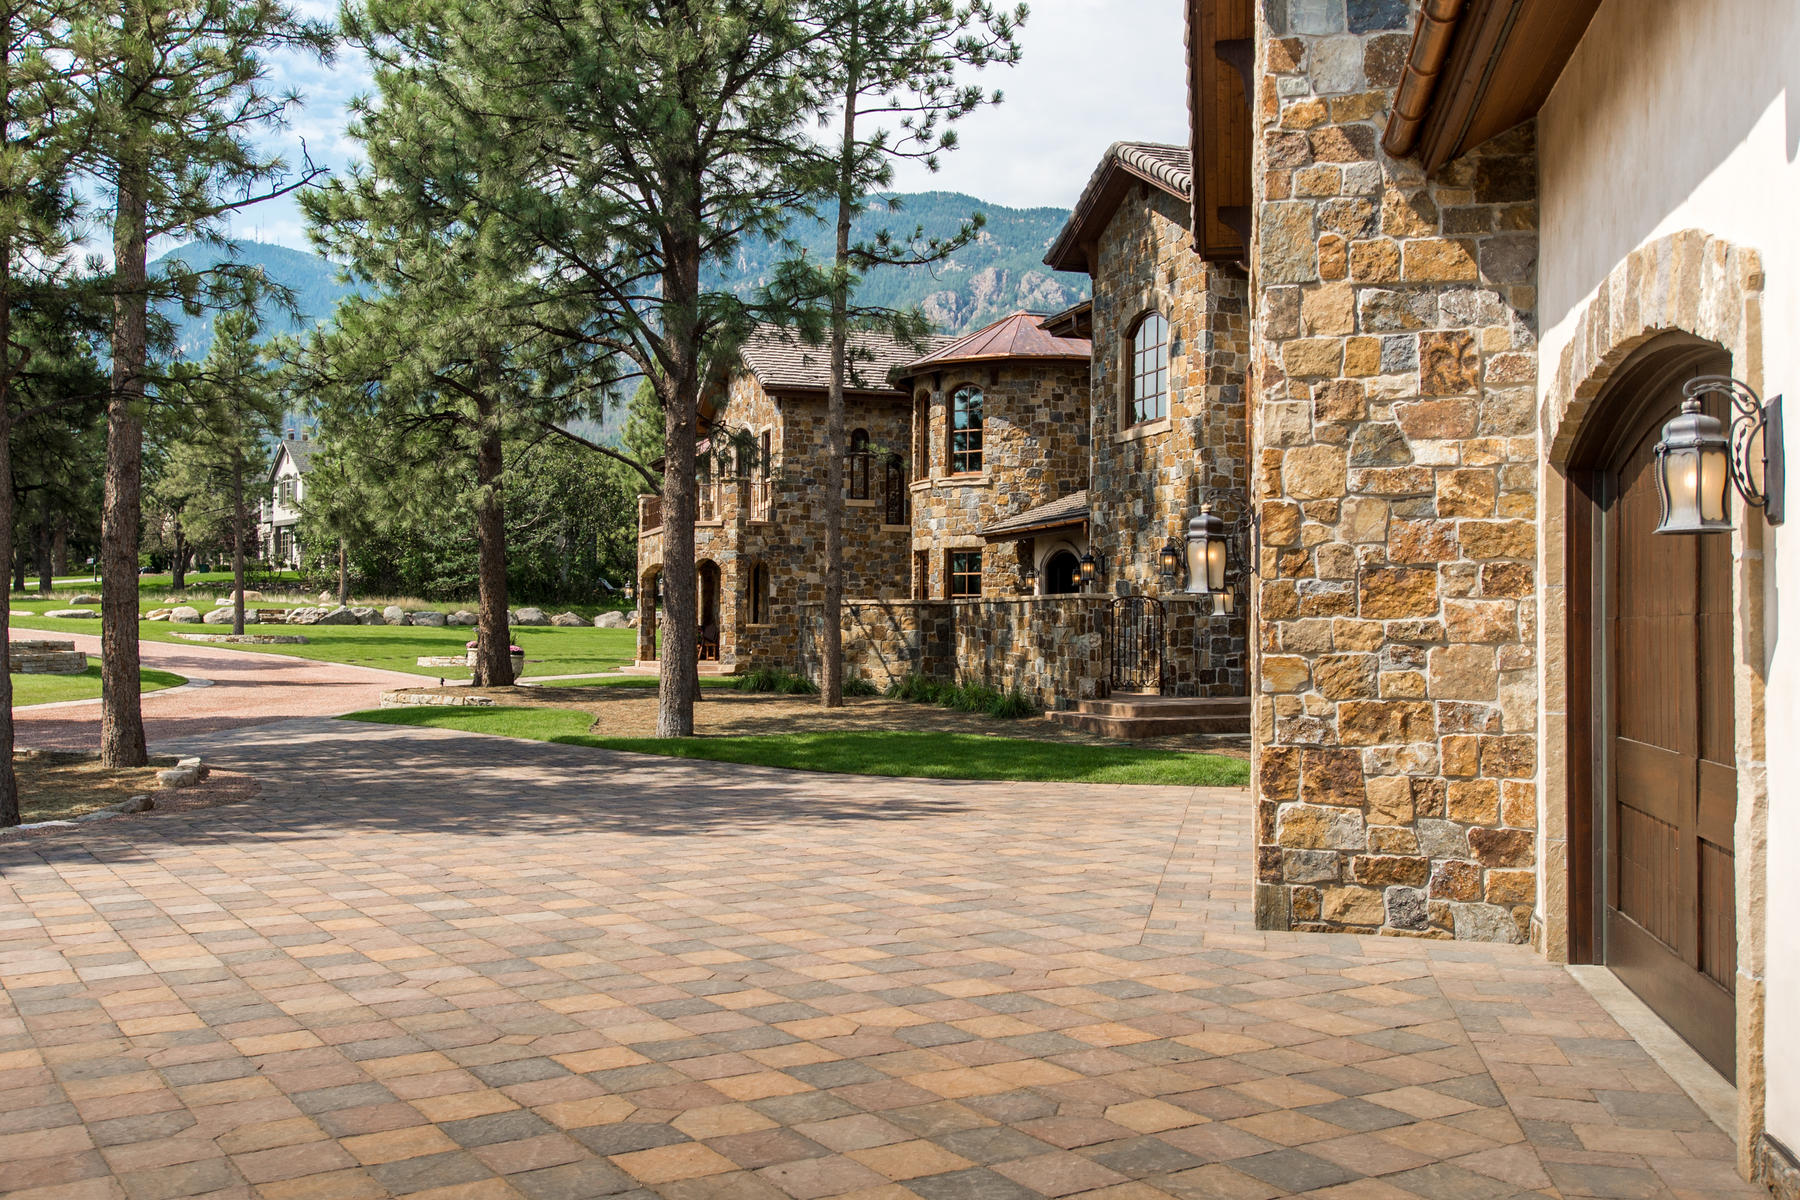 Additional photo for property listing at The most spectacular home in Colorado Springs! 22 Crossland Rd Colorado Springs, Colorado 80906 United States